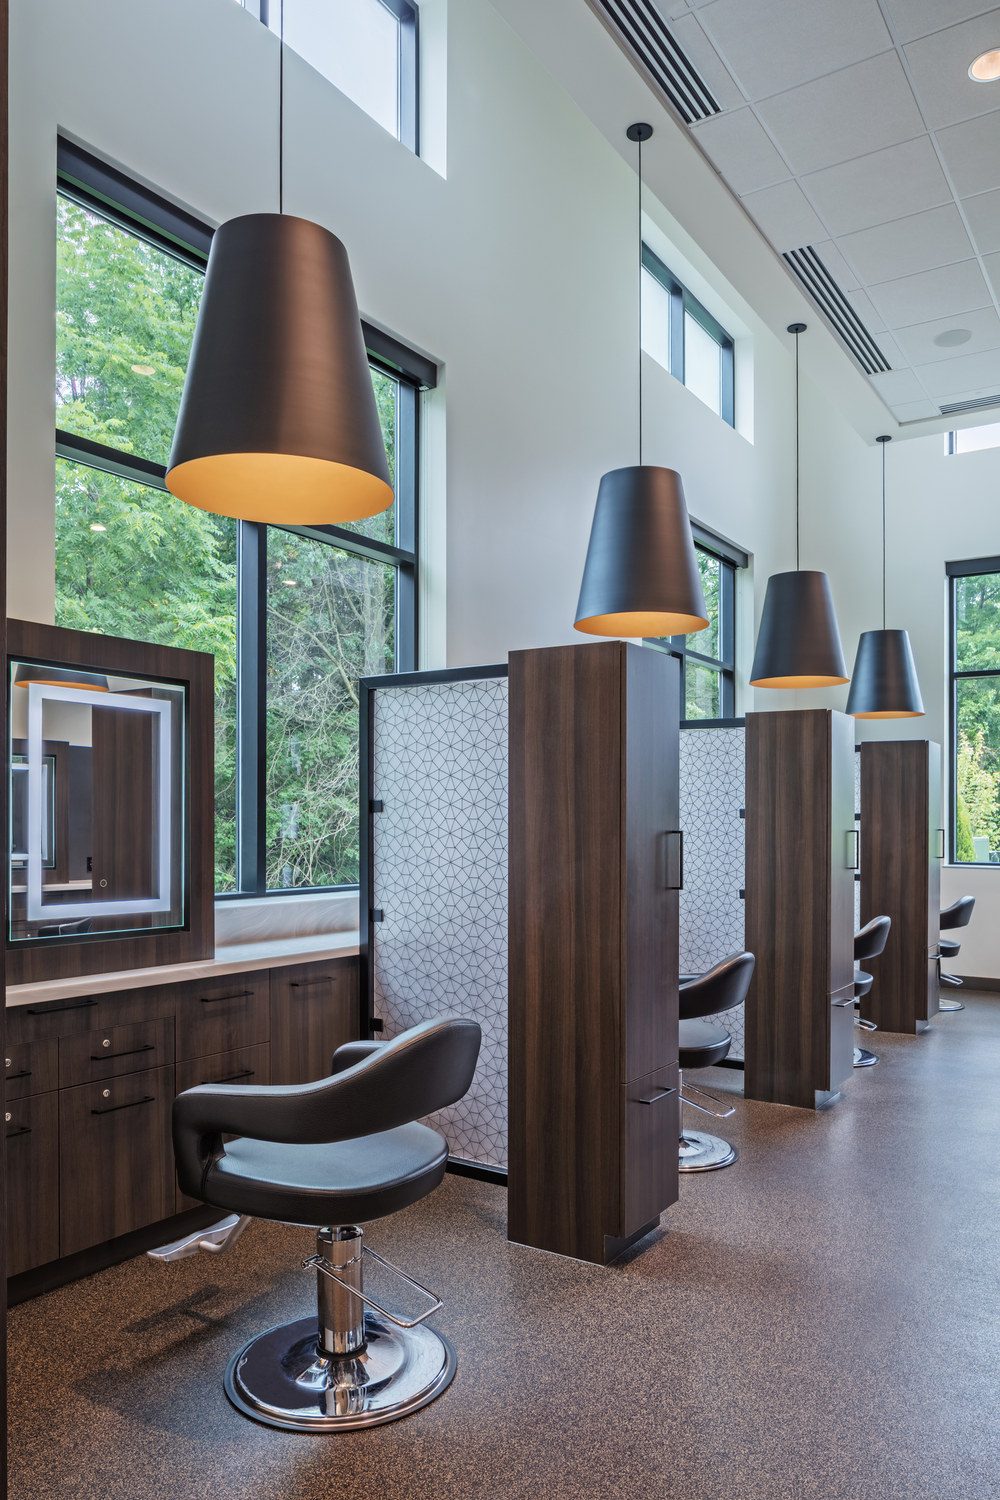 One of the salon's private stations.